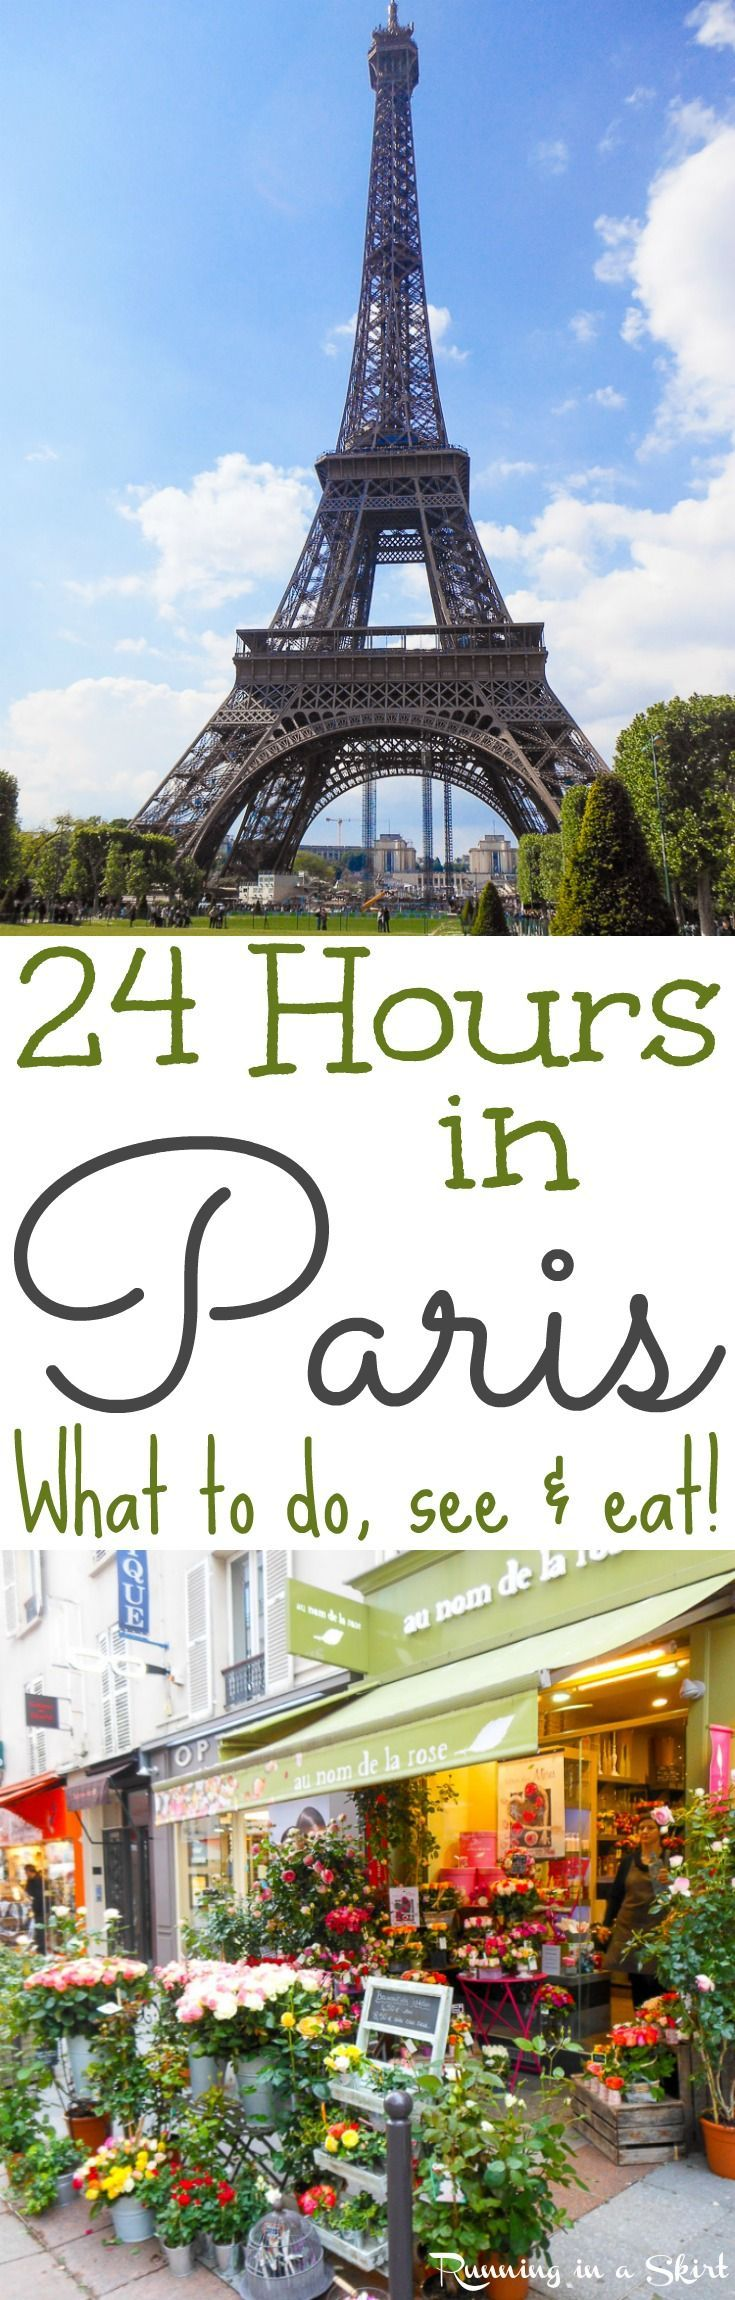 24 Hours in Paris... things to do in the city of lights! Places to visit, food to eat and what to do on a short trip. Great ideas and tips for getting the most out of your time with the Eiffel Tower, Lourve, Cafes and attractions. / Running in a Skirt